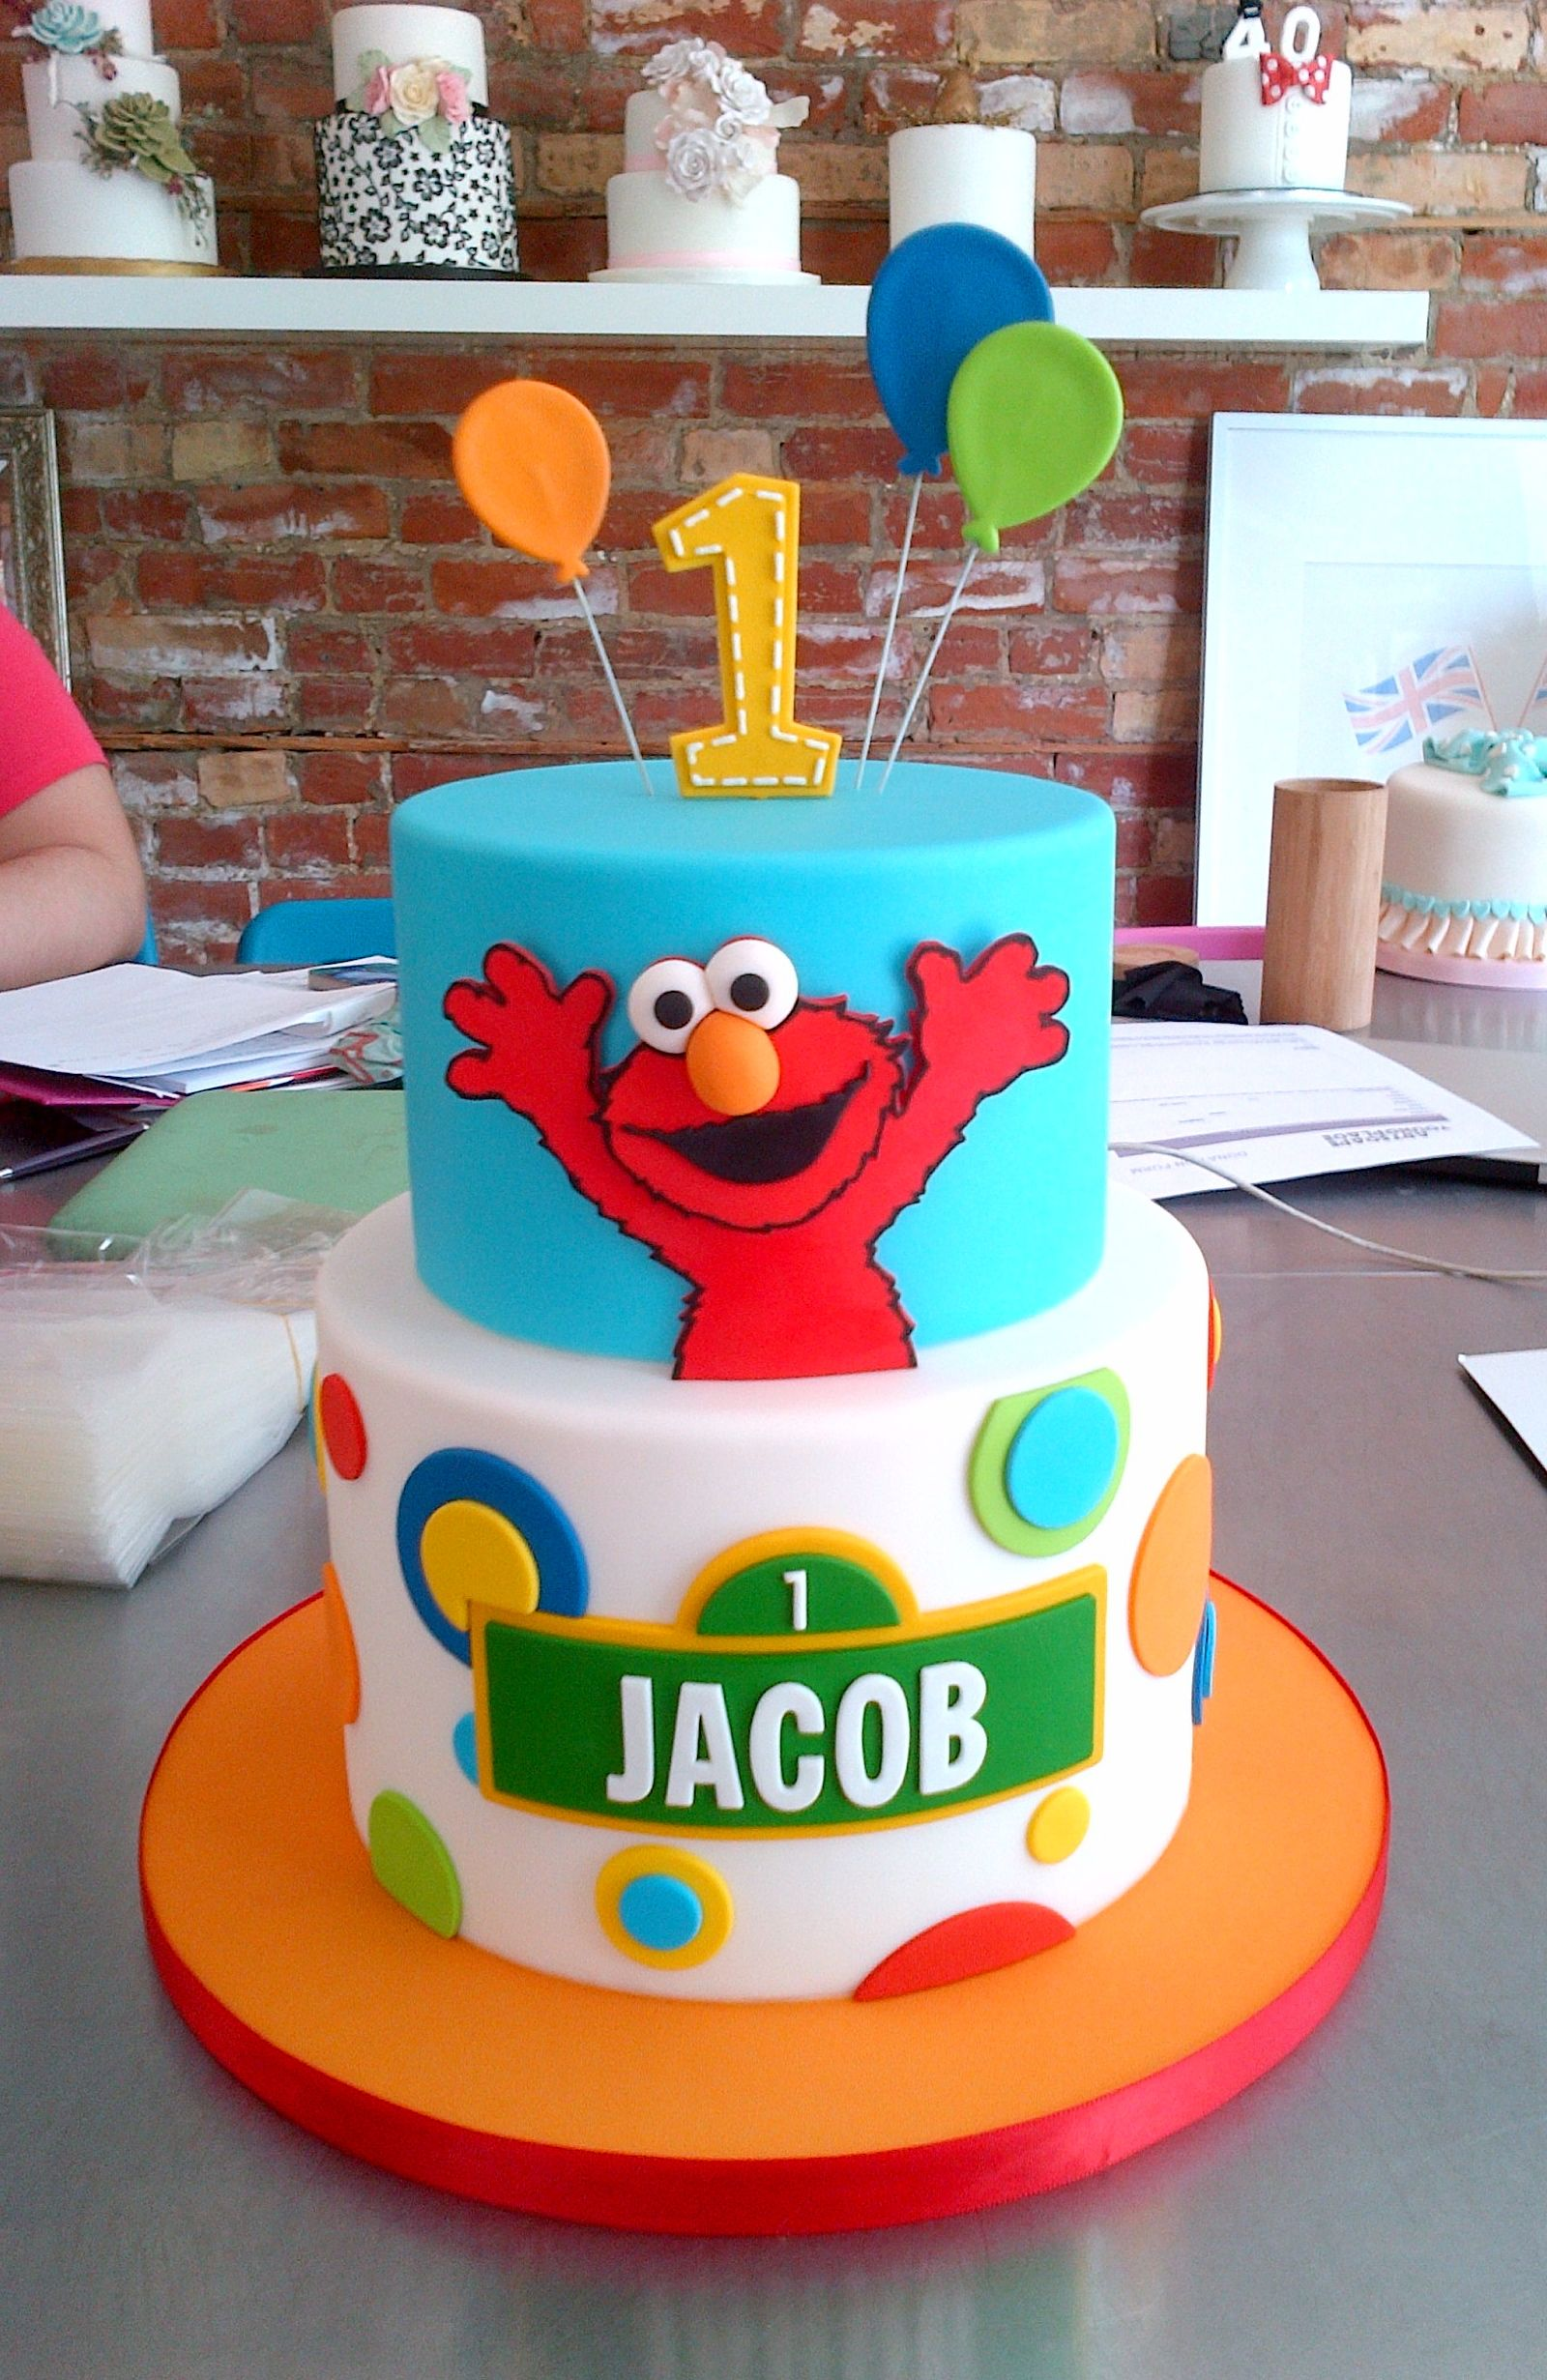 elmo birthday cake Elmo Surprise Birthday Cake! #Balloons #Sesamestreet #Blue #Red  elmo birthday cake